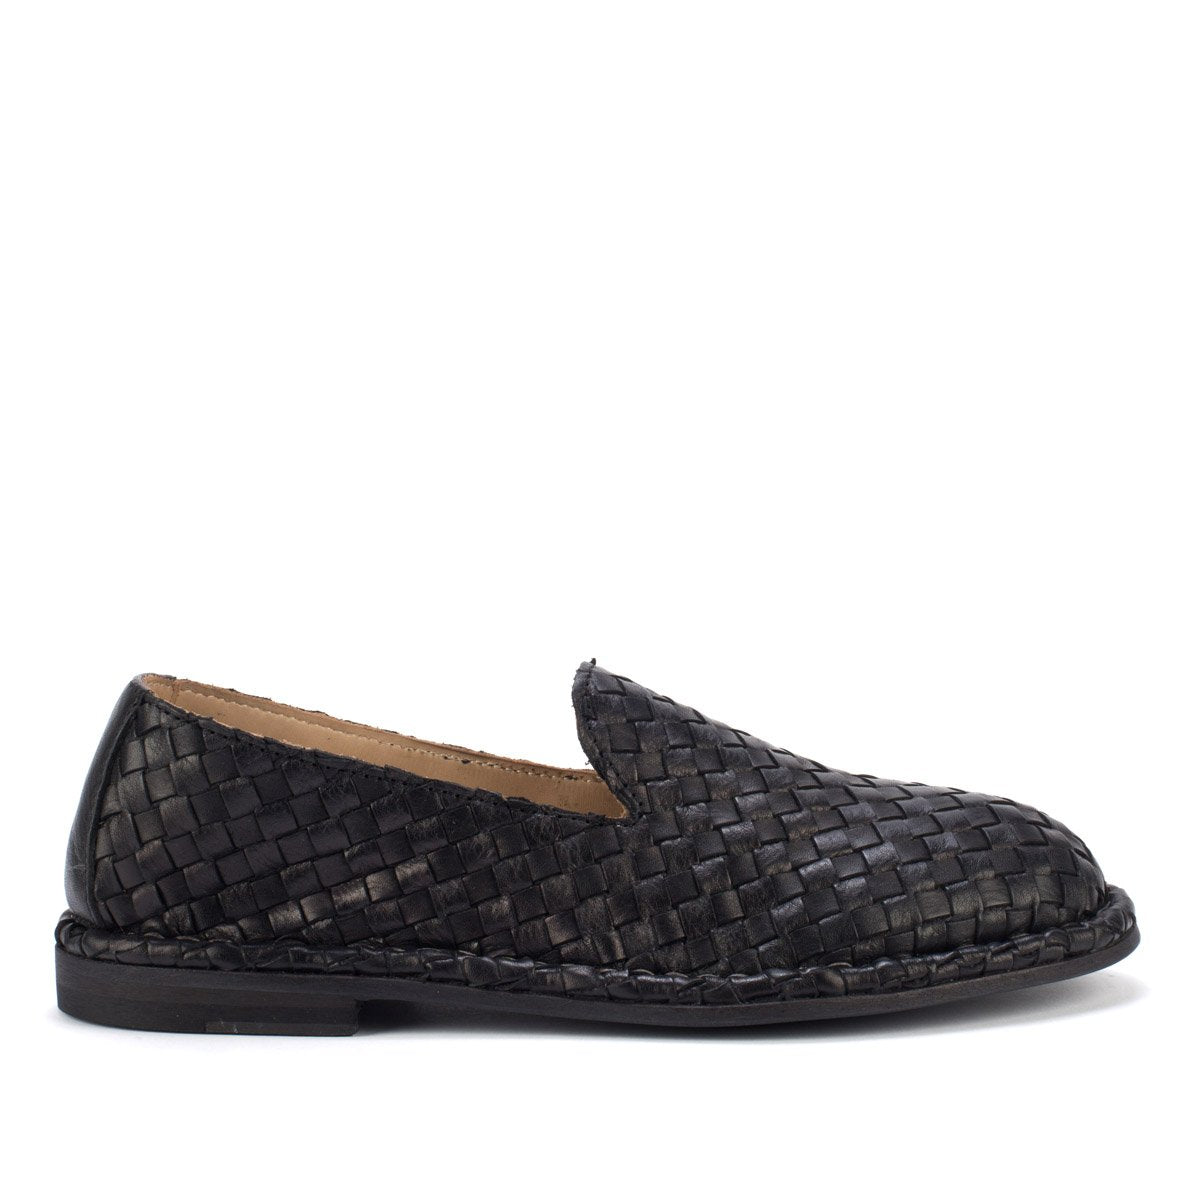 HAND 06 WOVEN SLIPPERS – Black